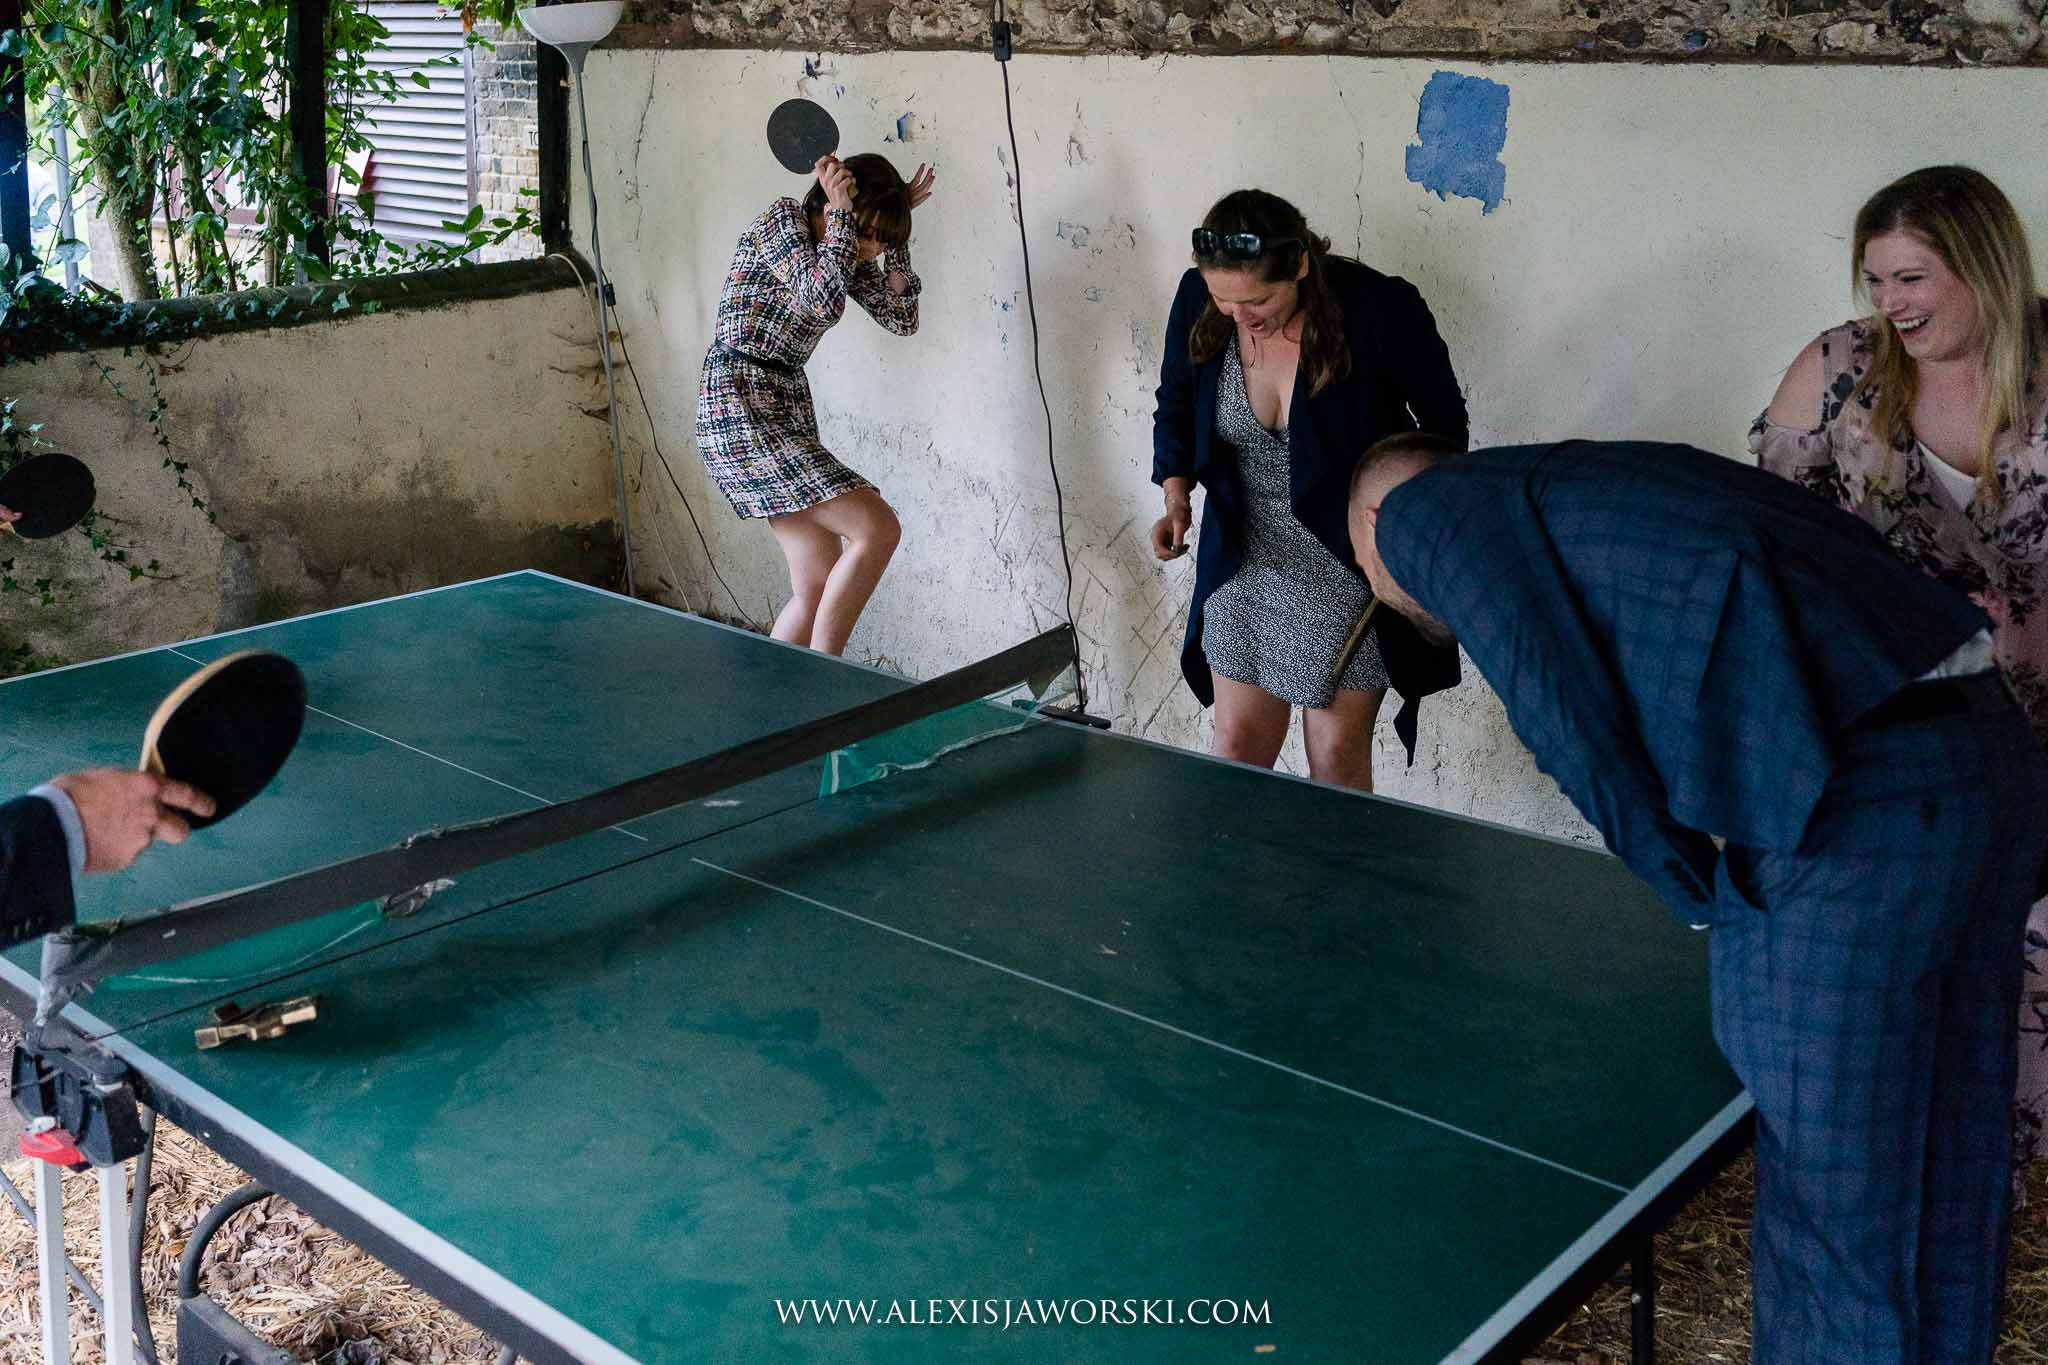 guests playing ping pong